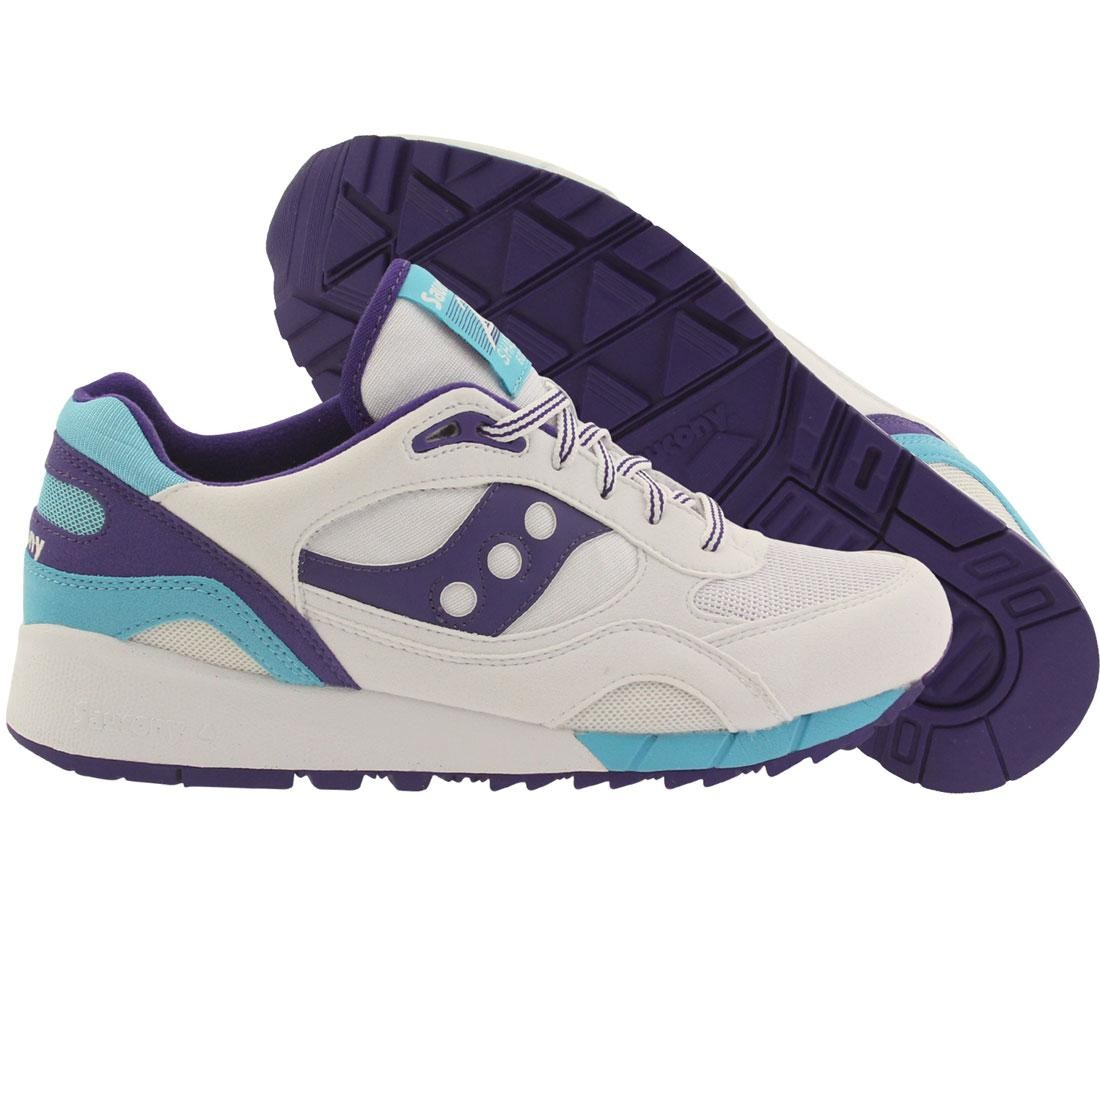 5a5f20bc569c Saucony Men Shadow 6000 white purple